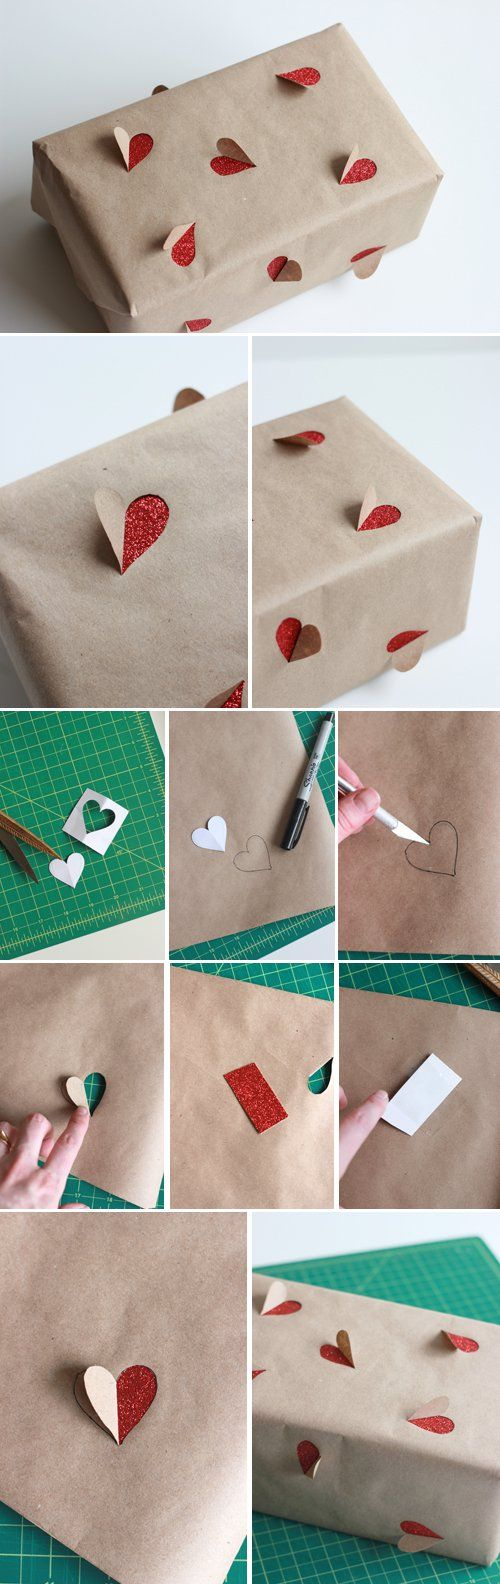 HEART-CUT-OUT-GIFT-WRAPPING